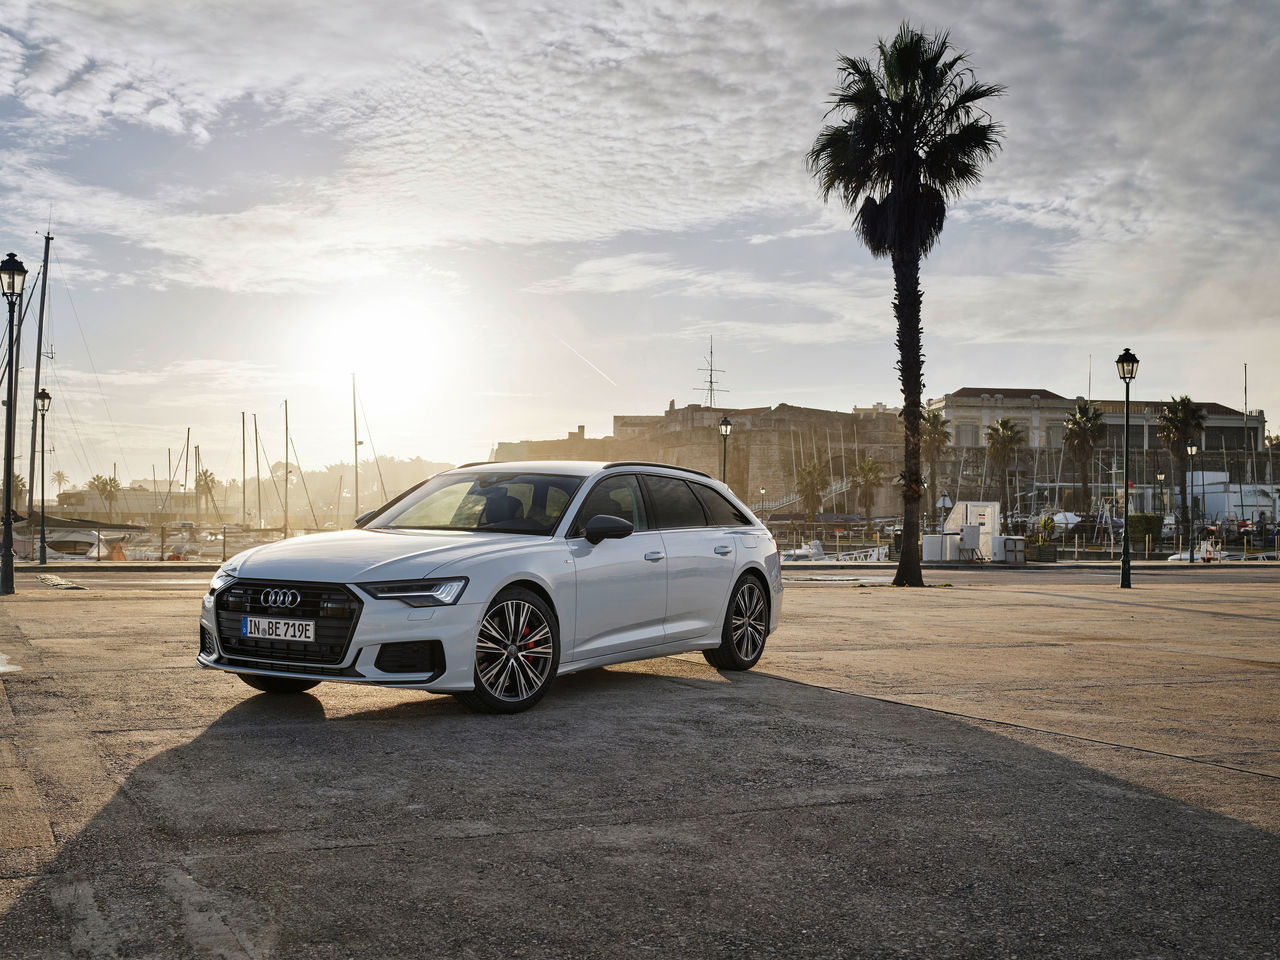 Audi full-size station wagon now as a plug-in hybrid: ||the new A6 Avant TFSI e quattro